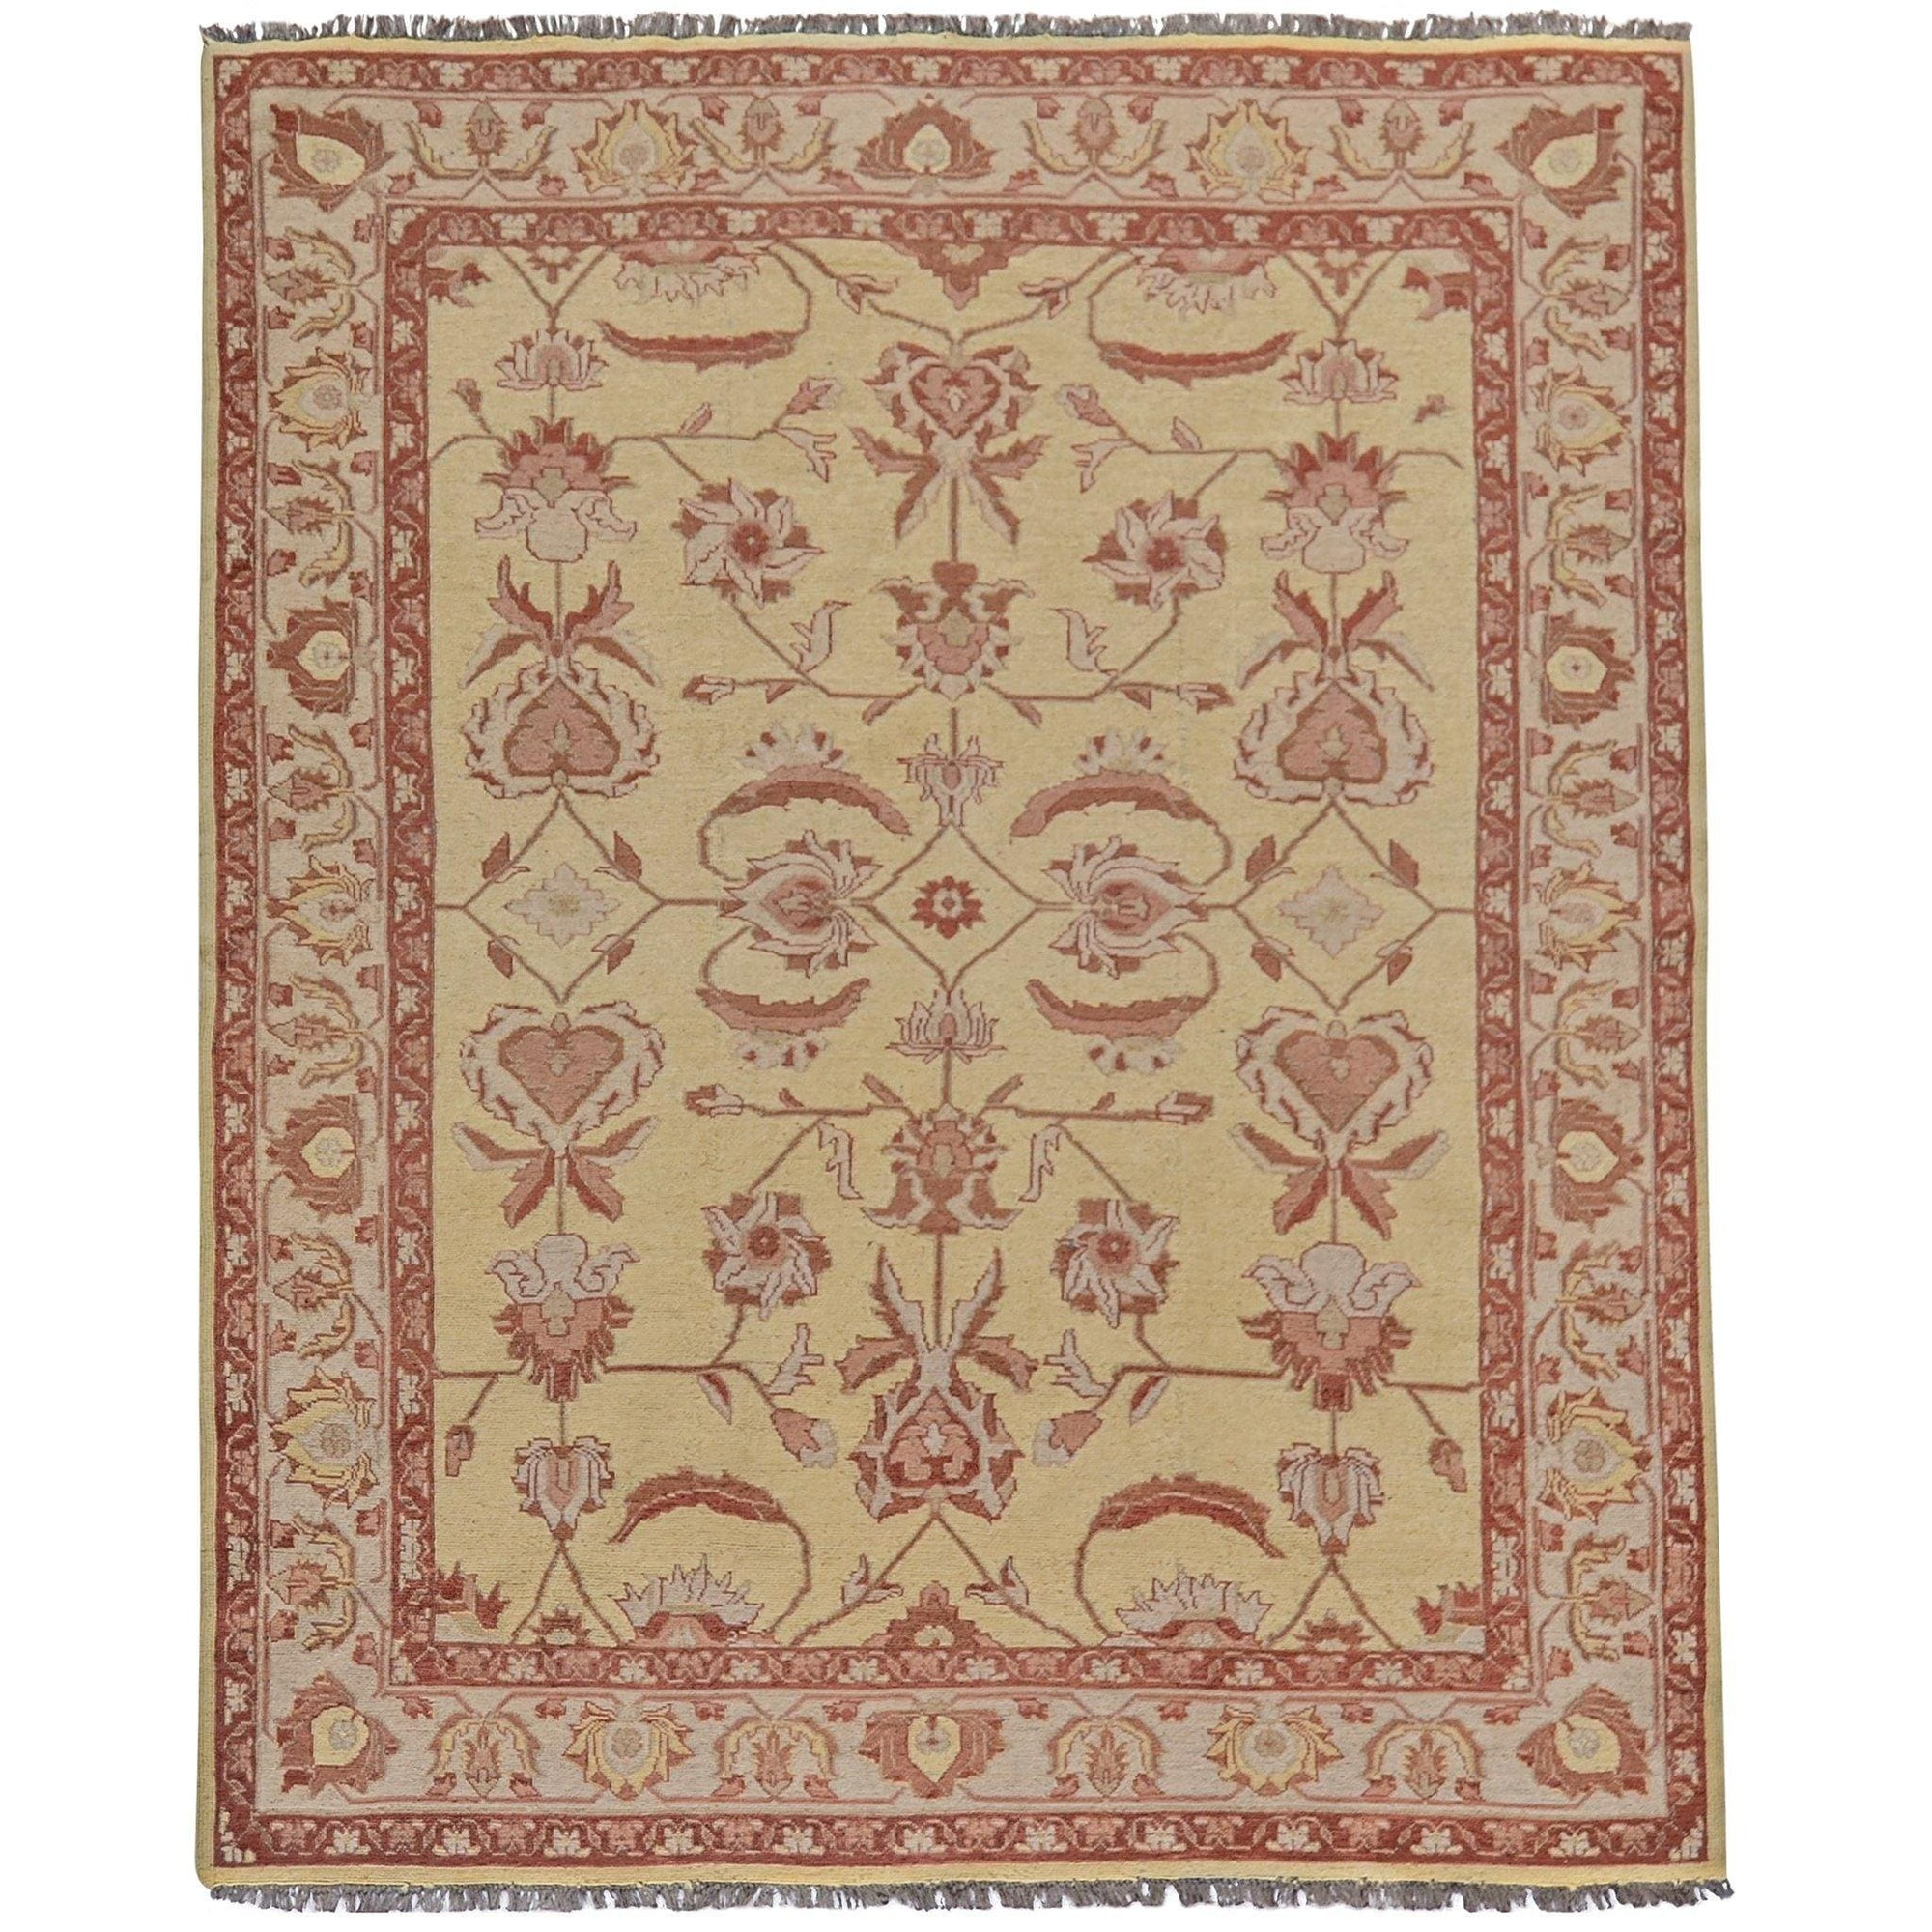 Hand-woven Afghani Sumak Kilim 183cm x 223cm Persian-Rug | House-of-Haghi | NewMarket | Auckland | NZ | Handmade Persian Rugs | Hand Knotted Persian Rugs